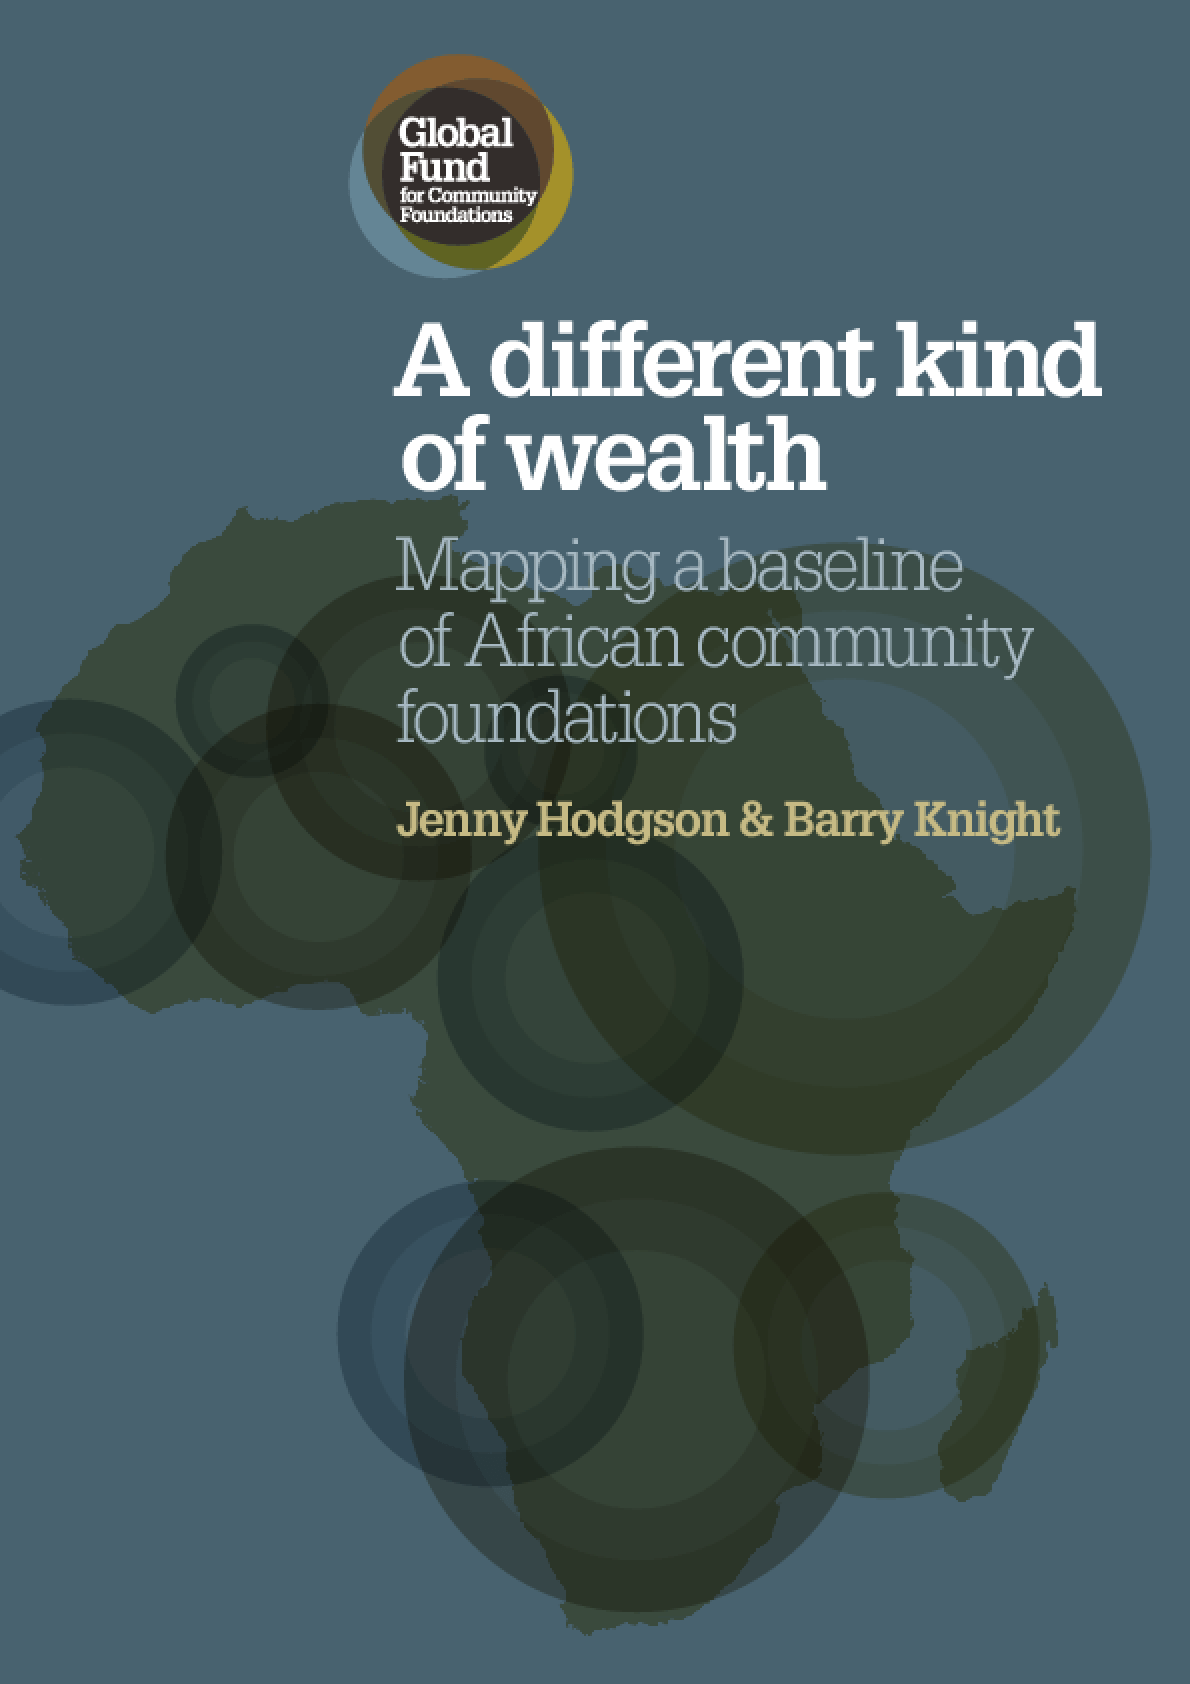 A Different Kind of Wealth: Mapping a Baseline of African Community Foundations